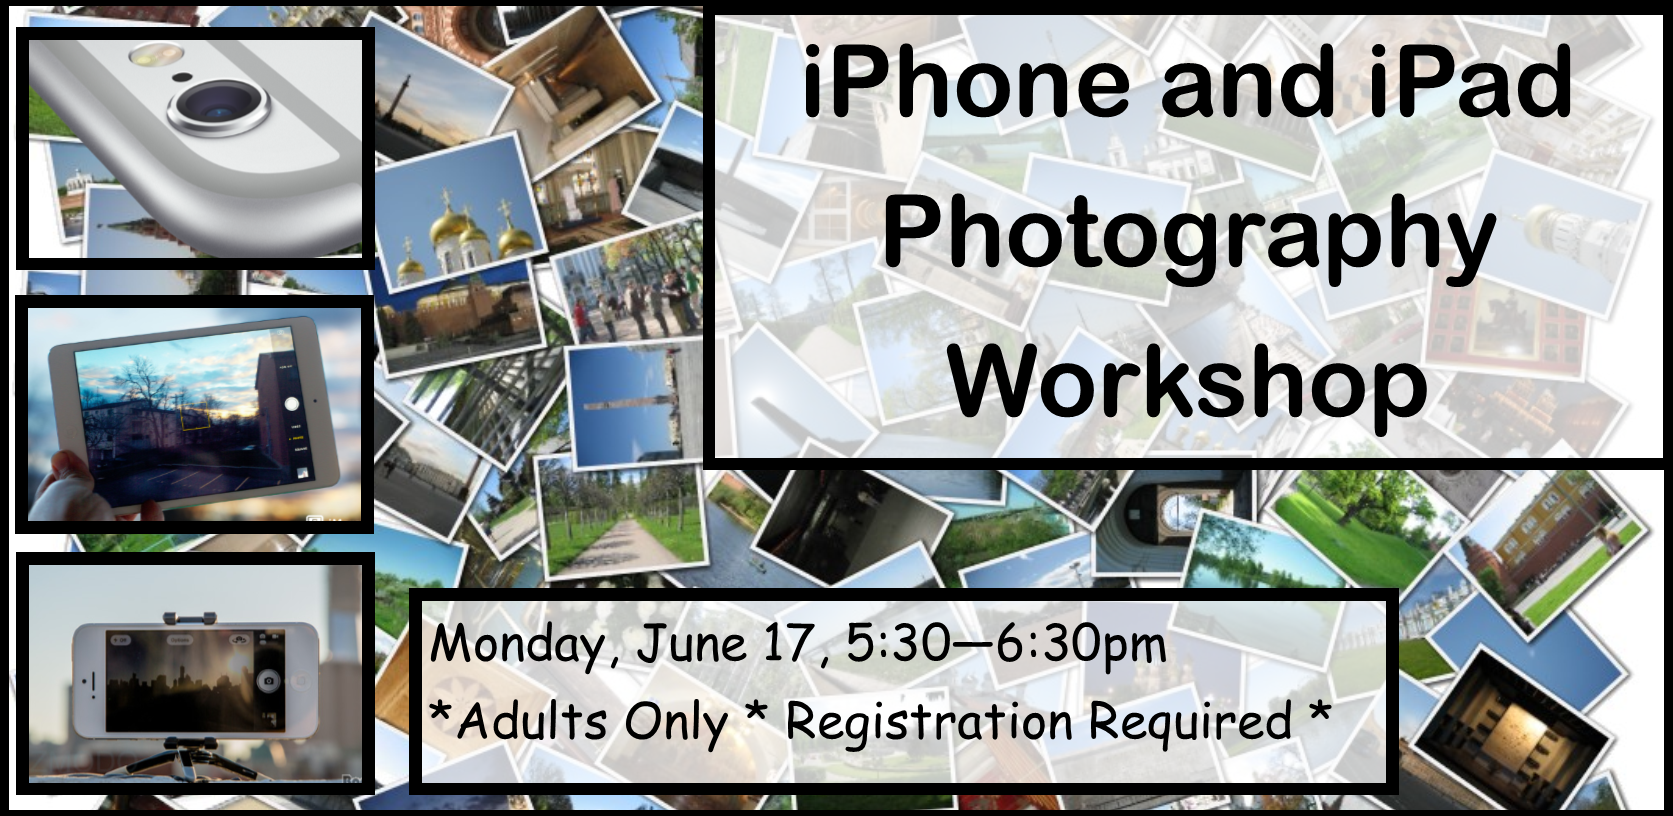 iPhone and iPad Photography Workshop